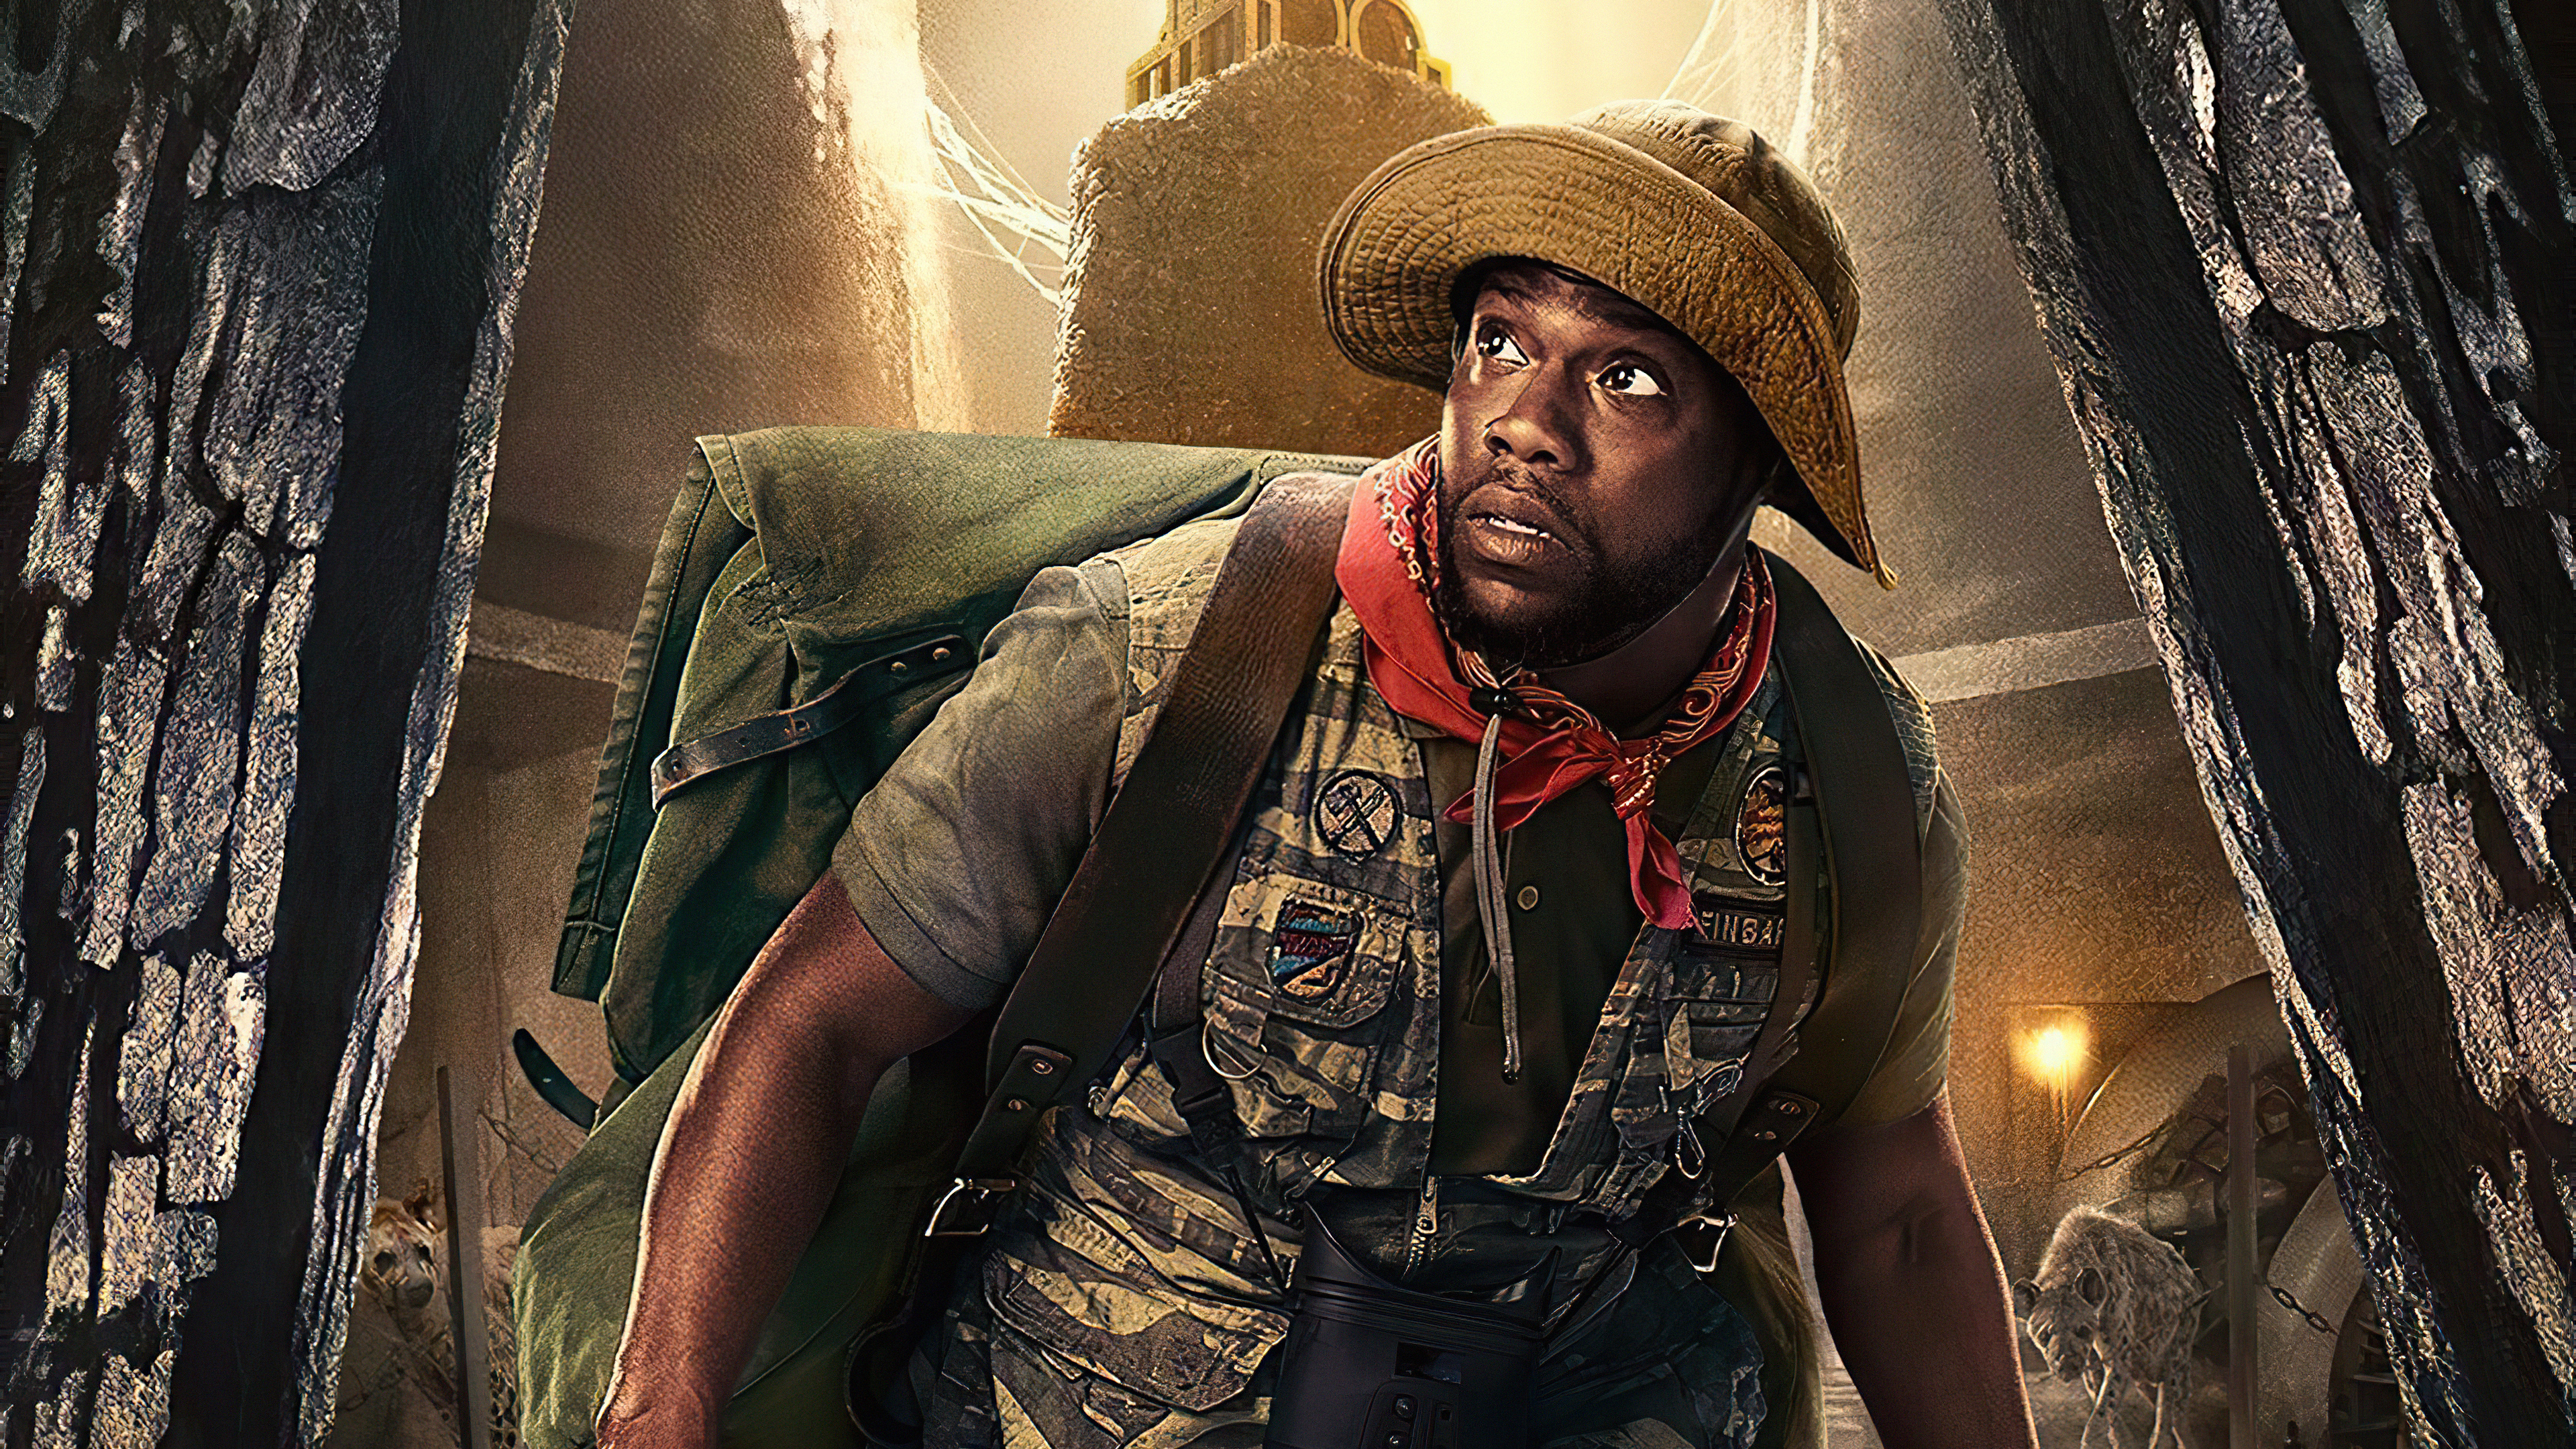 kevin hart in jumanji the next level 1576090997 - Kevin Hart In Jumanji The Next Level - Kevin Hart 4k wallpaper